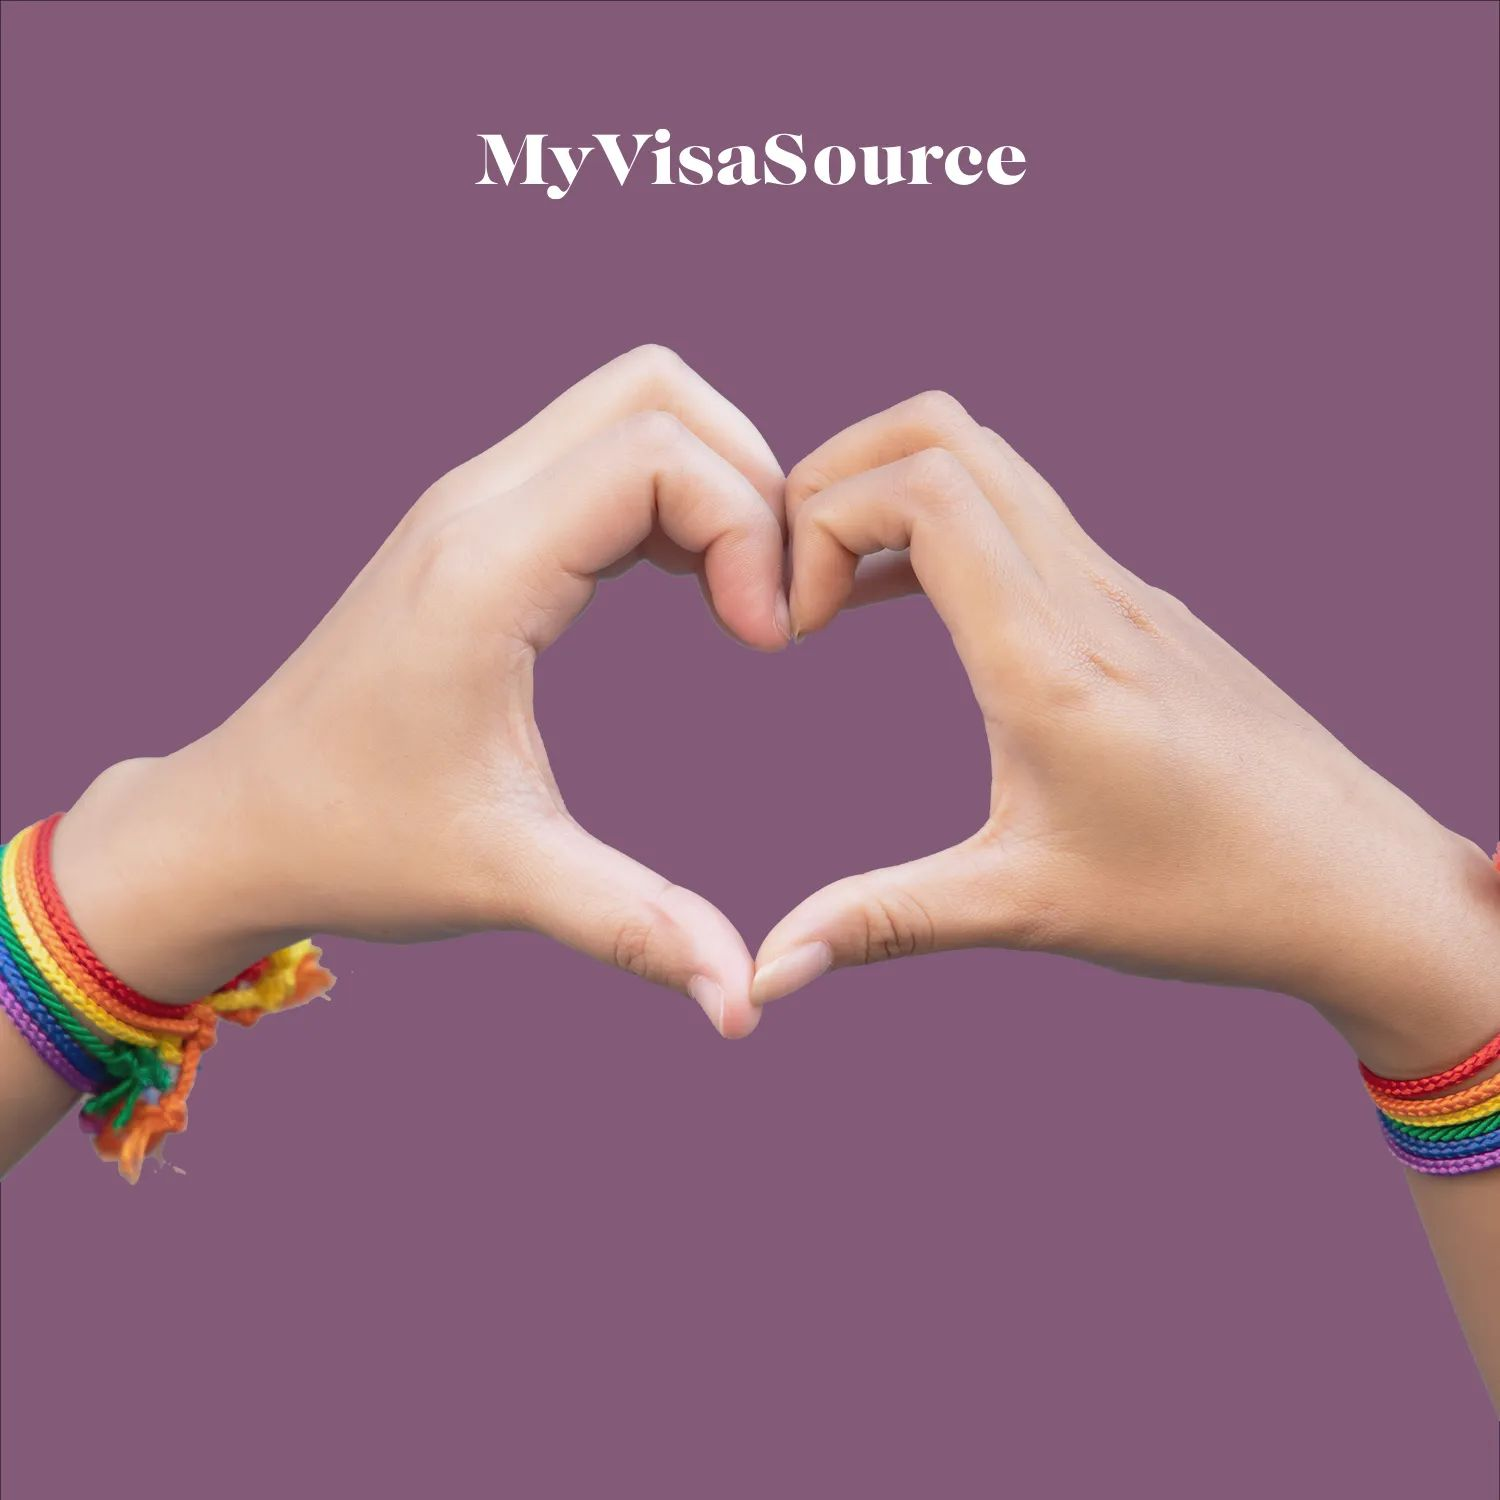 two-hands-forming-a-heart-shape-with-rainbow-bracelets-by-my-visa-source